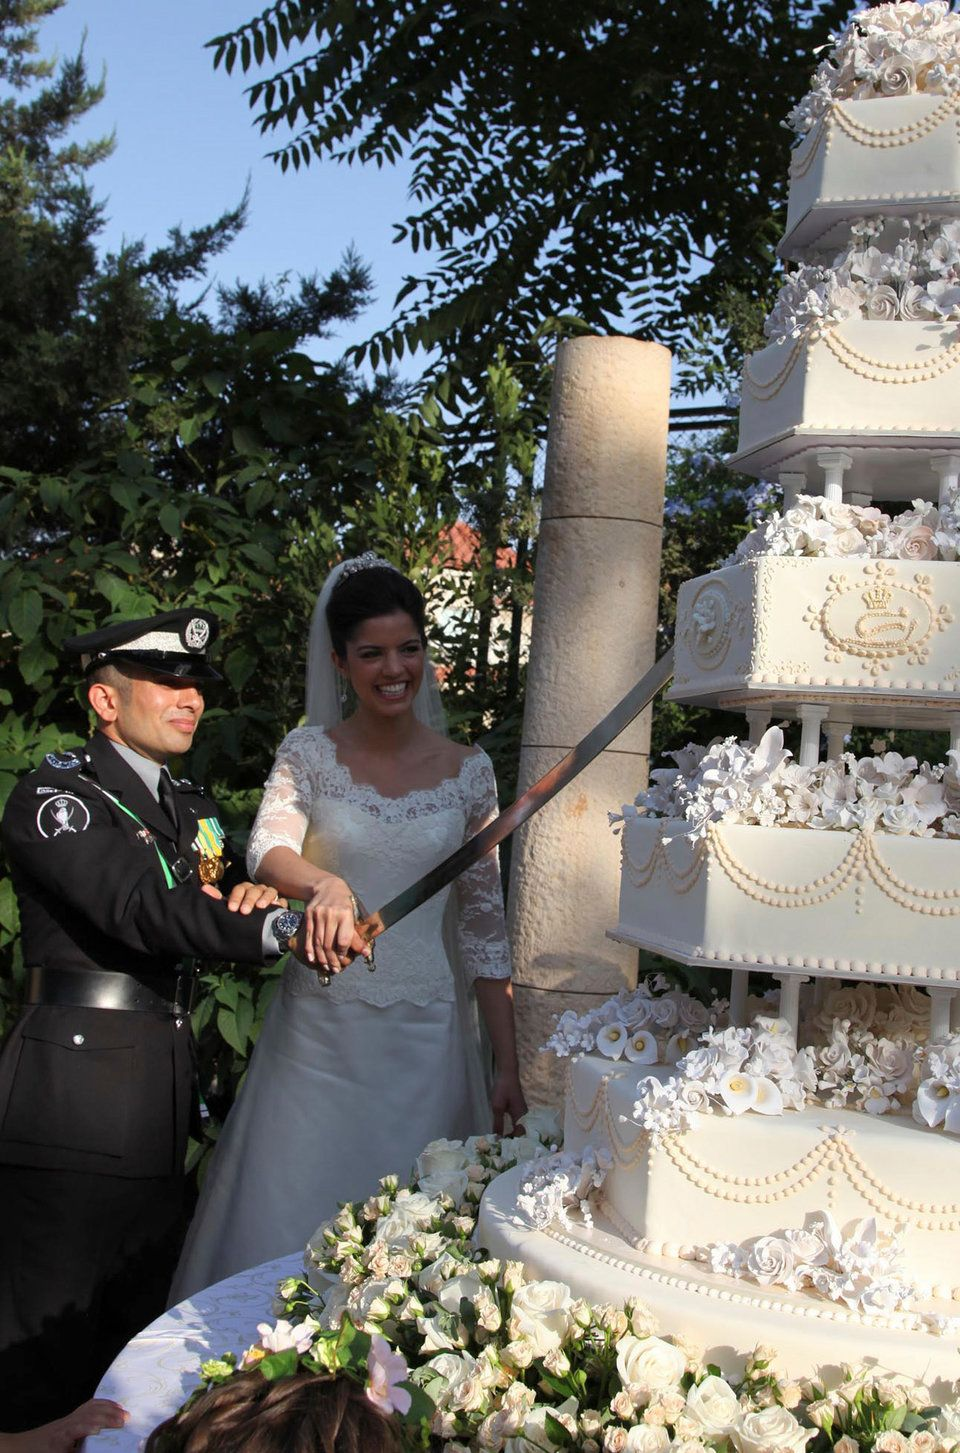 12 of the most incredible royal wedding cakes of all time